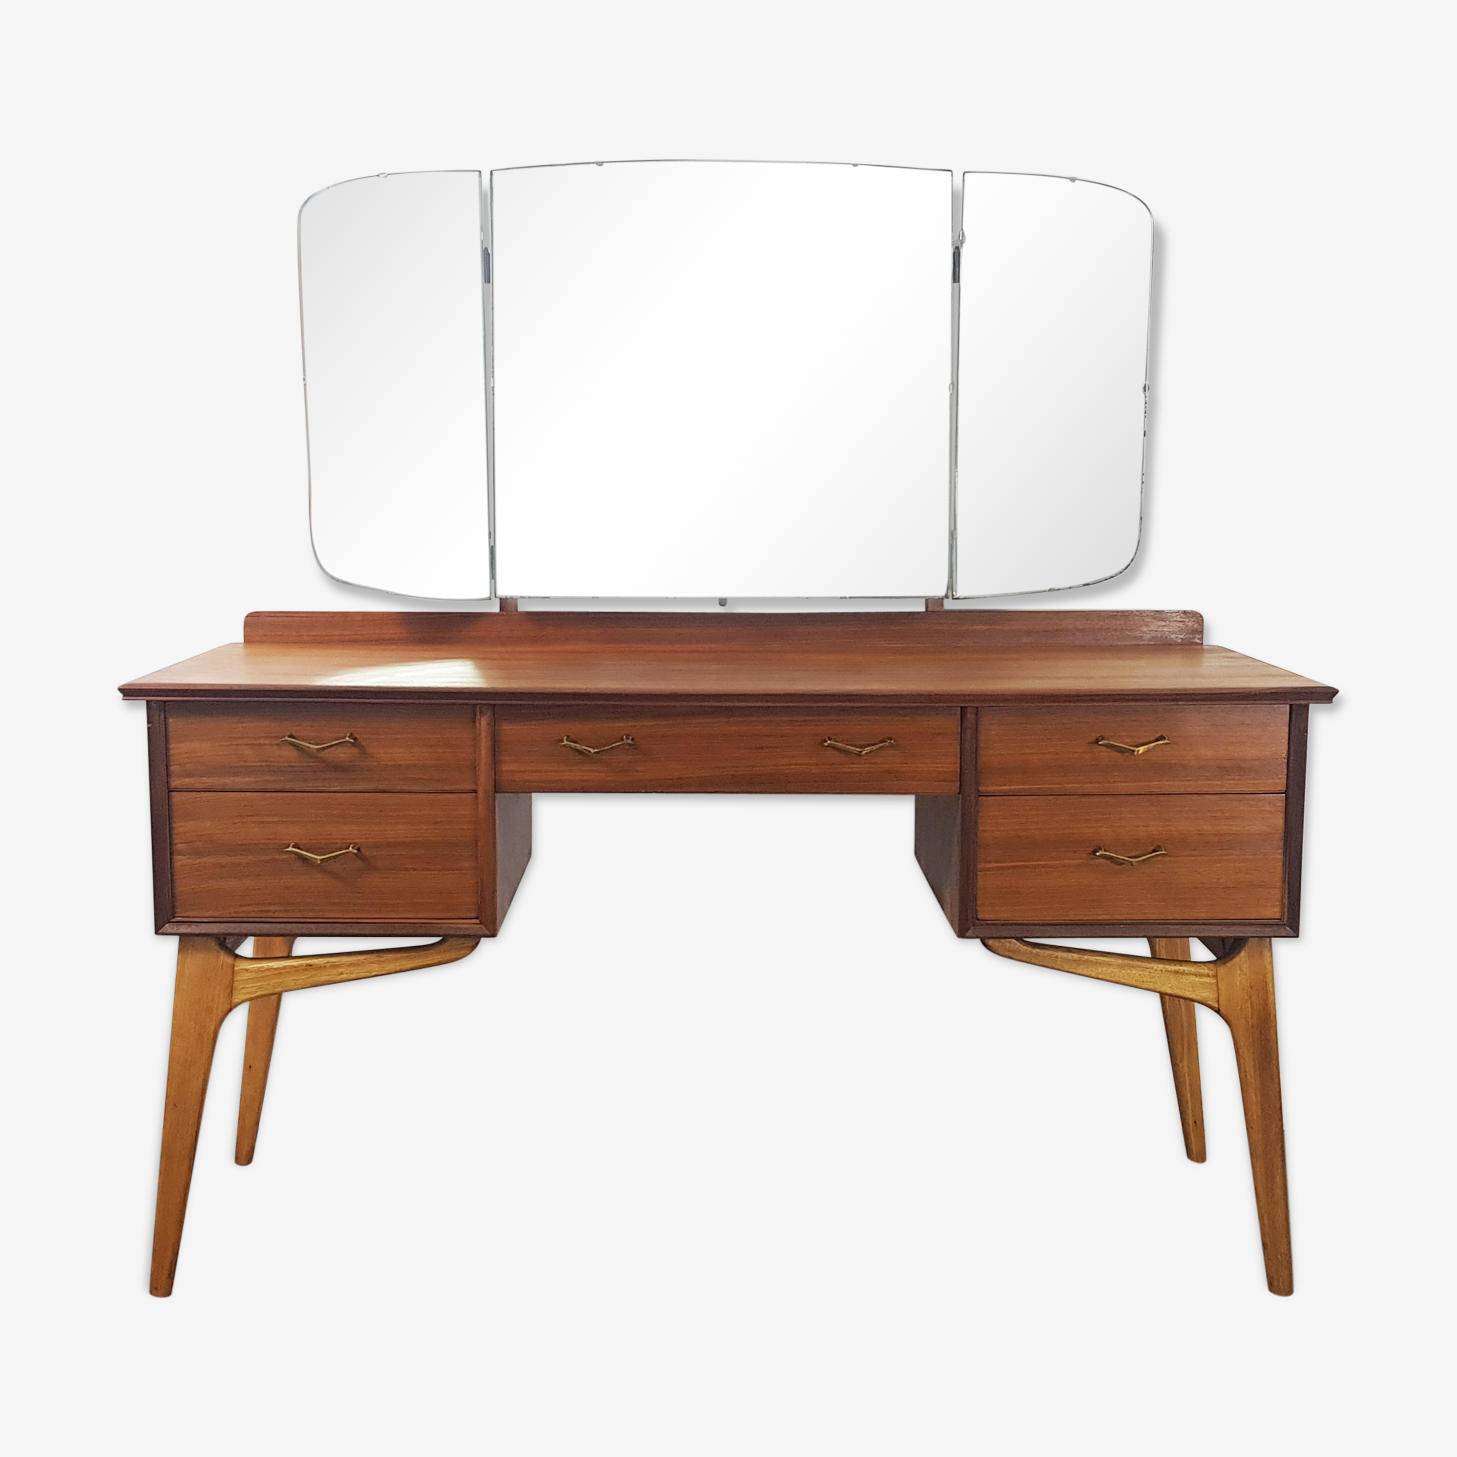 3 Mirror Dressing Table by Alfred Cox for AC Furniture, 1950s